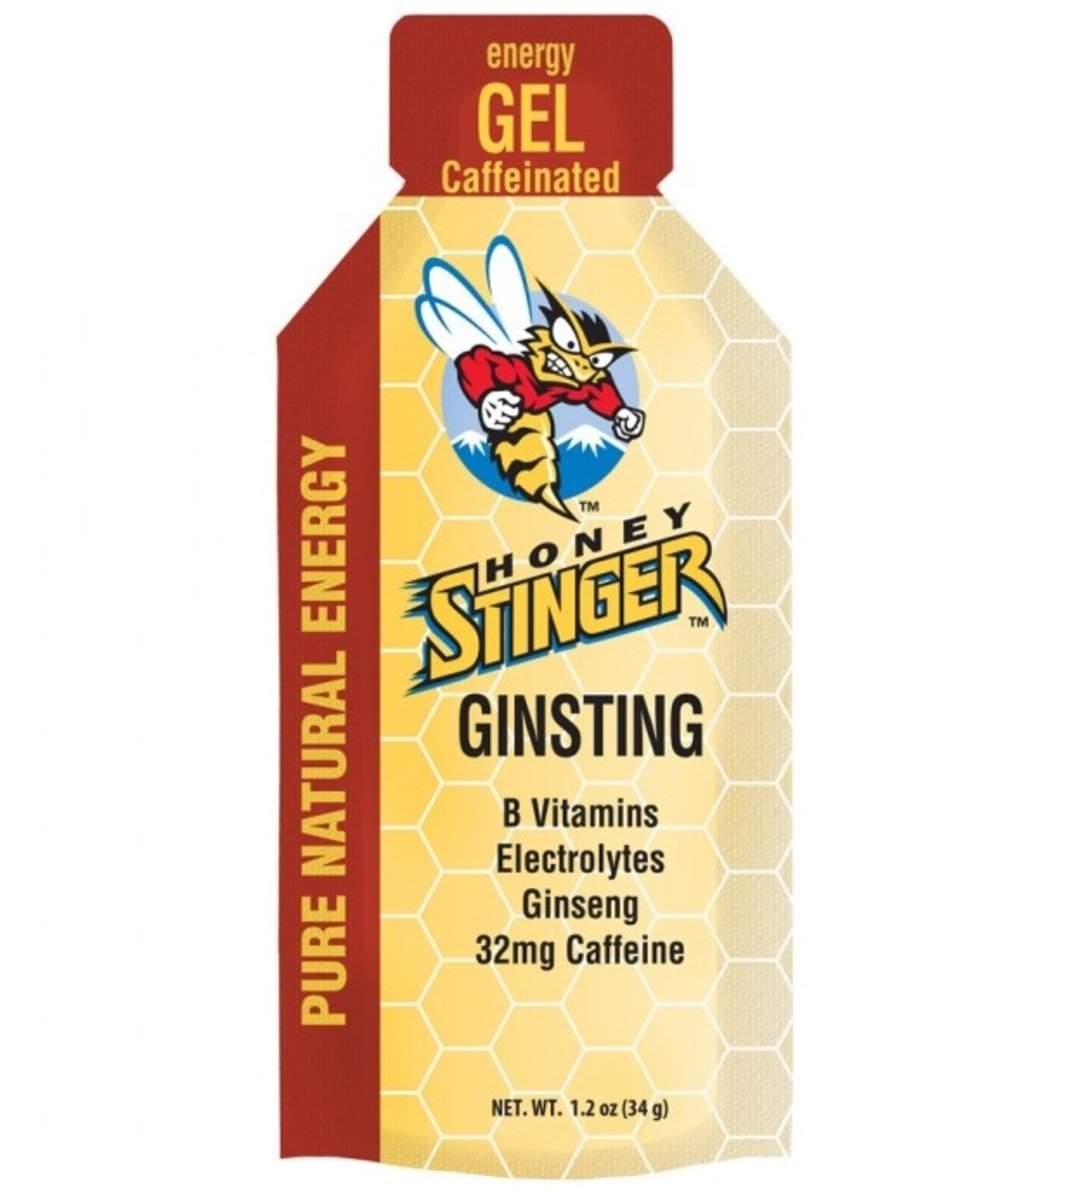 美國蜂蜜能量食品 -  Engery Gel Ginsting Caff. - 1 Box (24pcs)